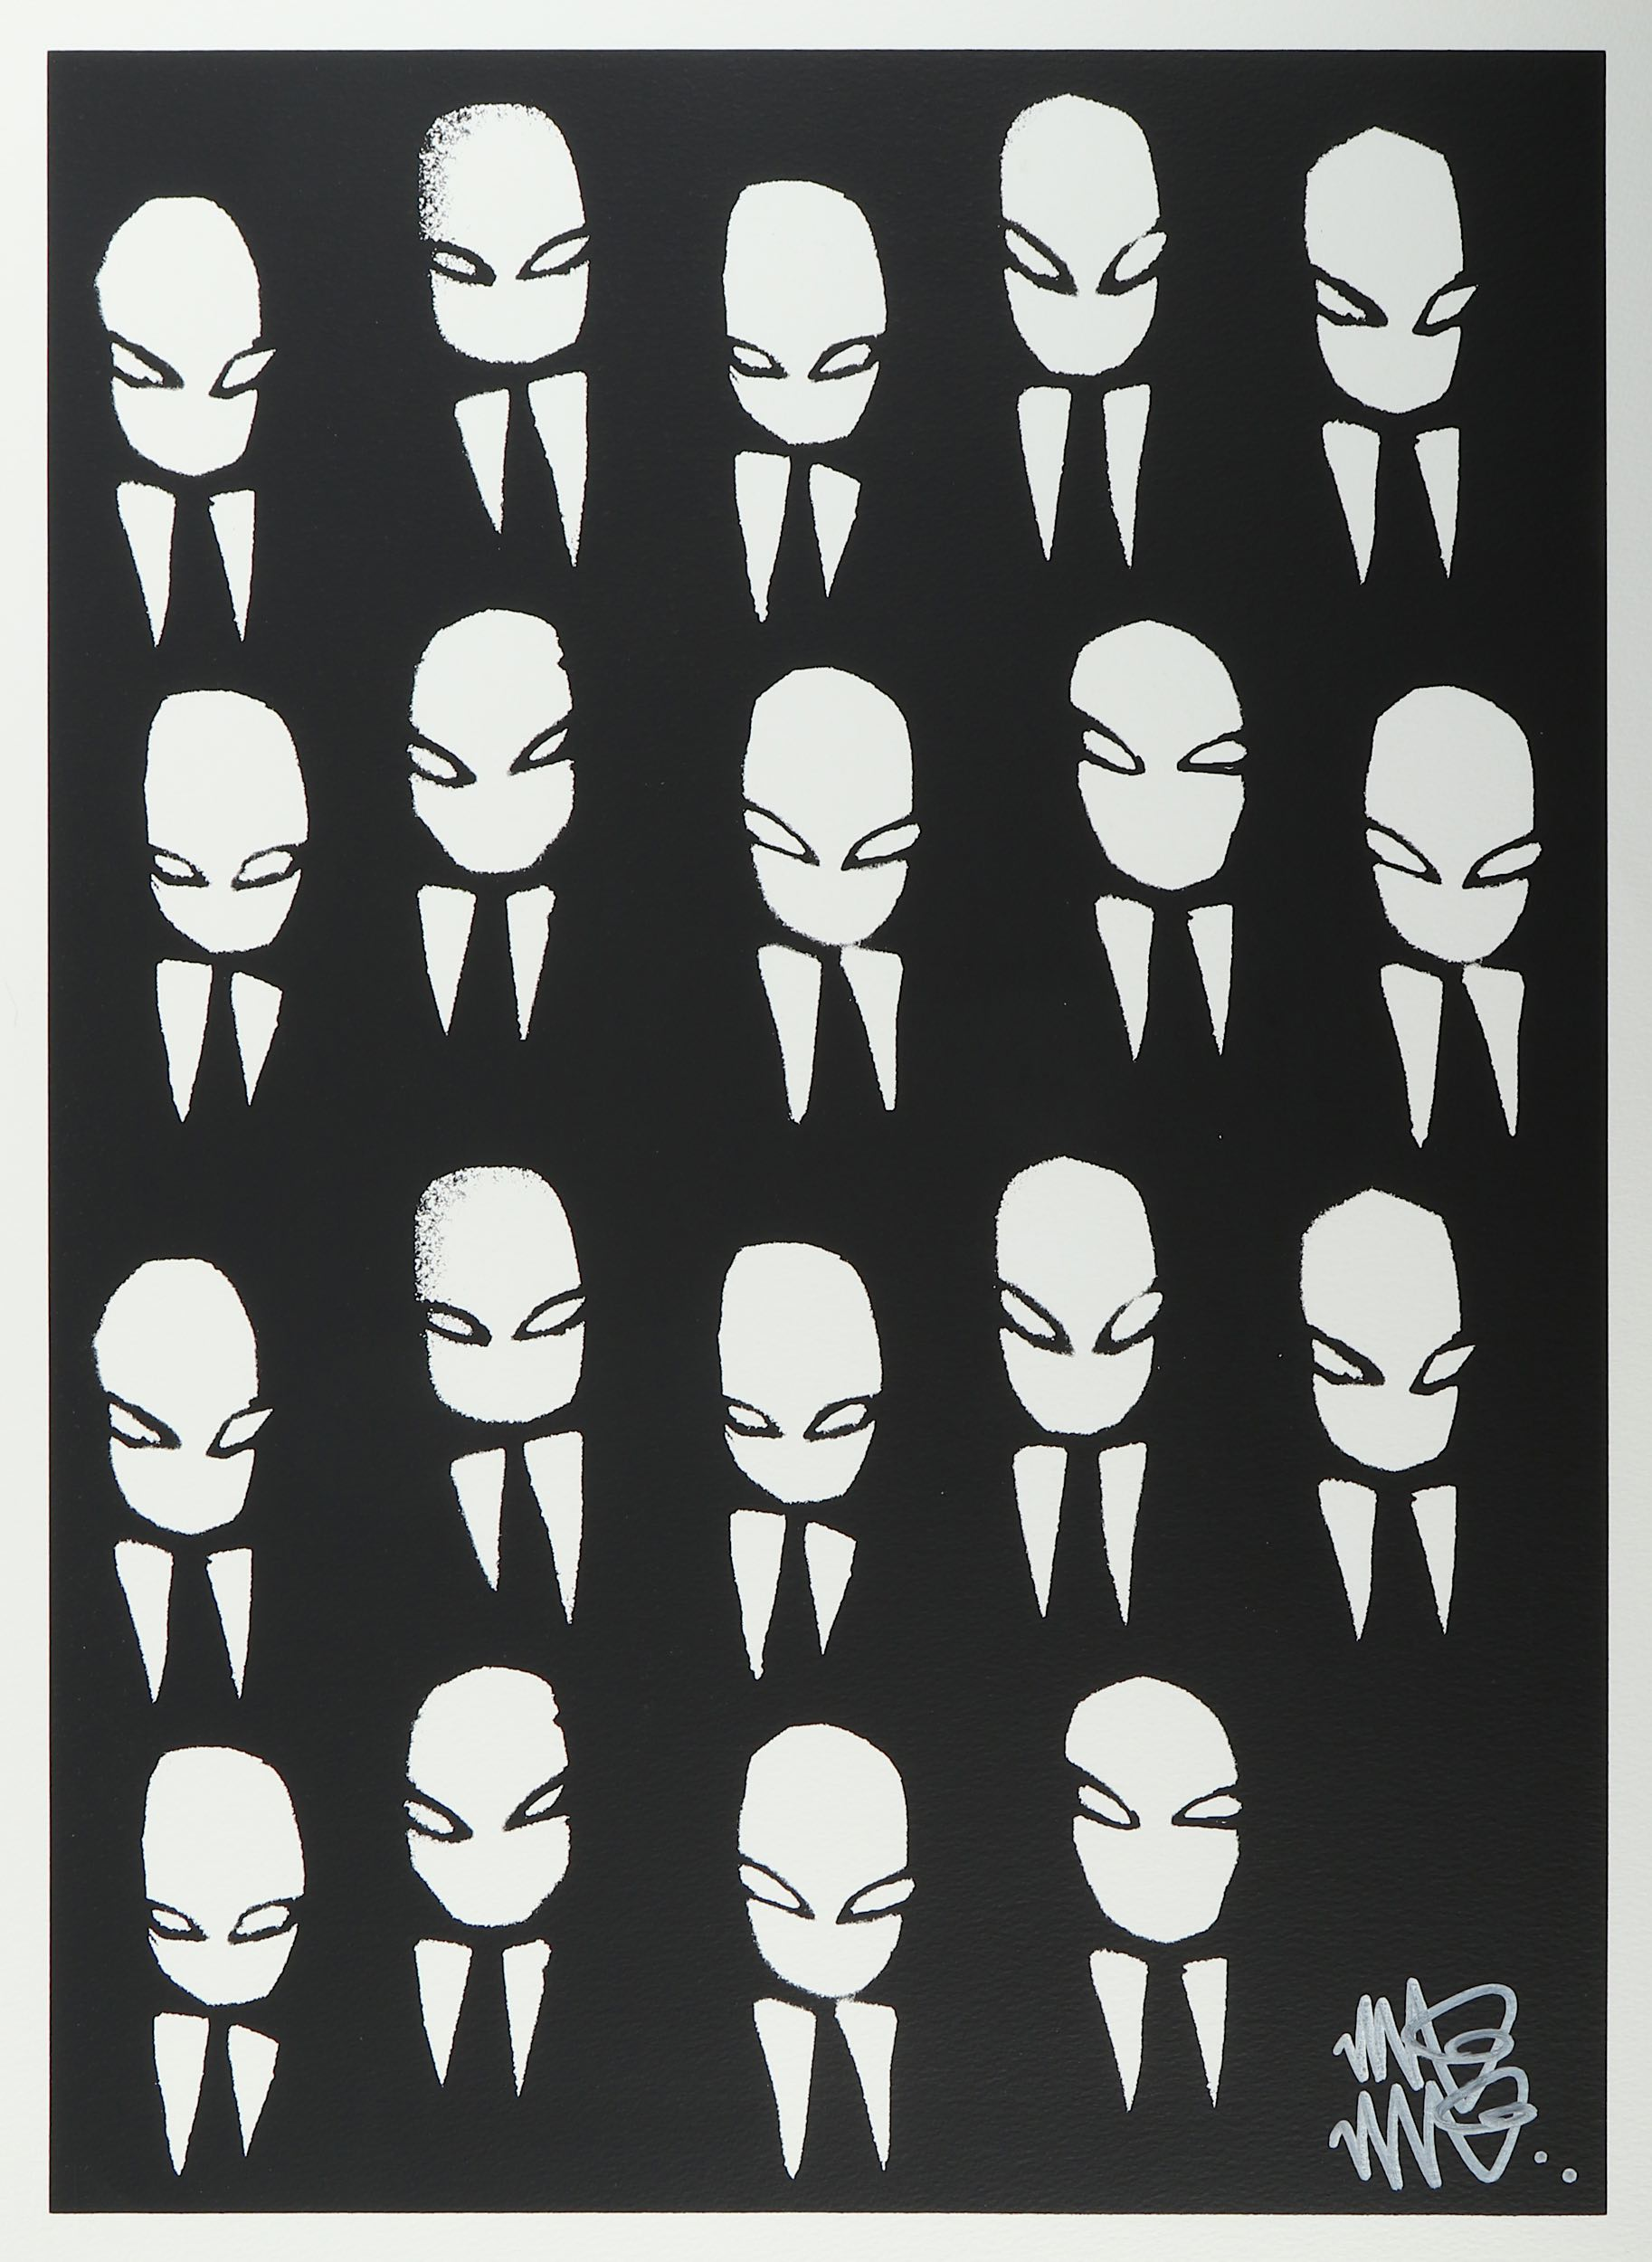 Lot 340 - Mau Mau (British), 'Business Heads', 2007